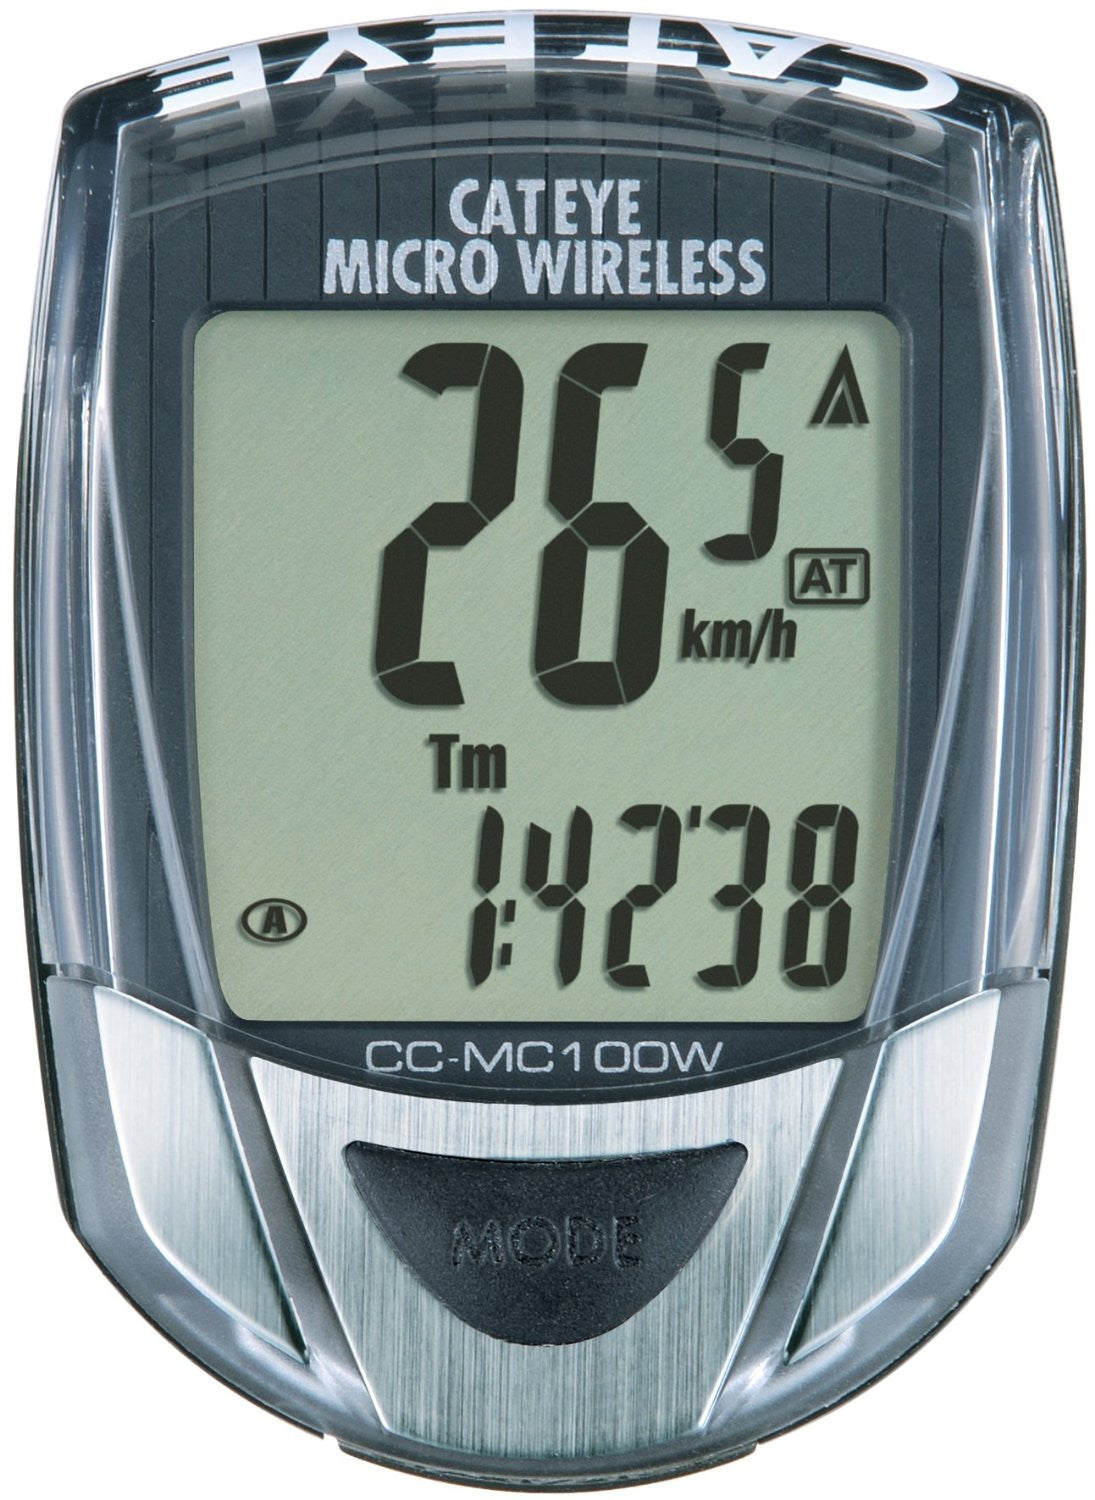 Cateye Micro Wireless, CC-MC100W Cycling Computer Black